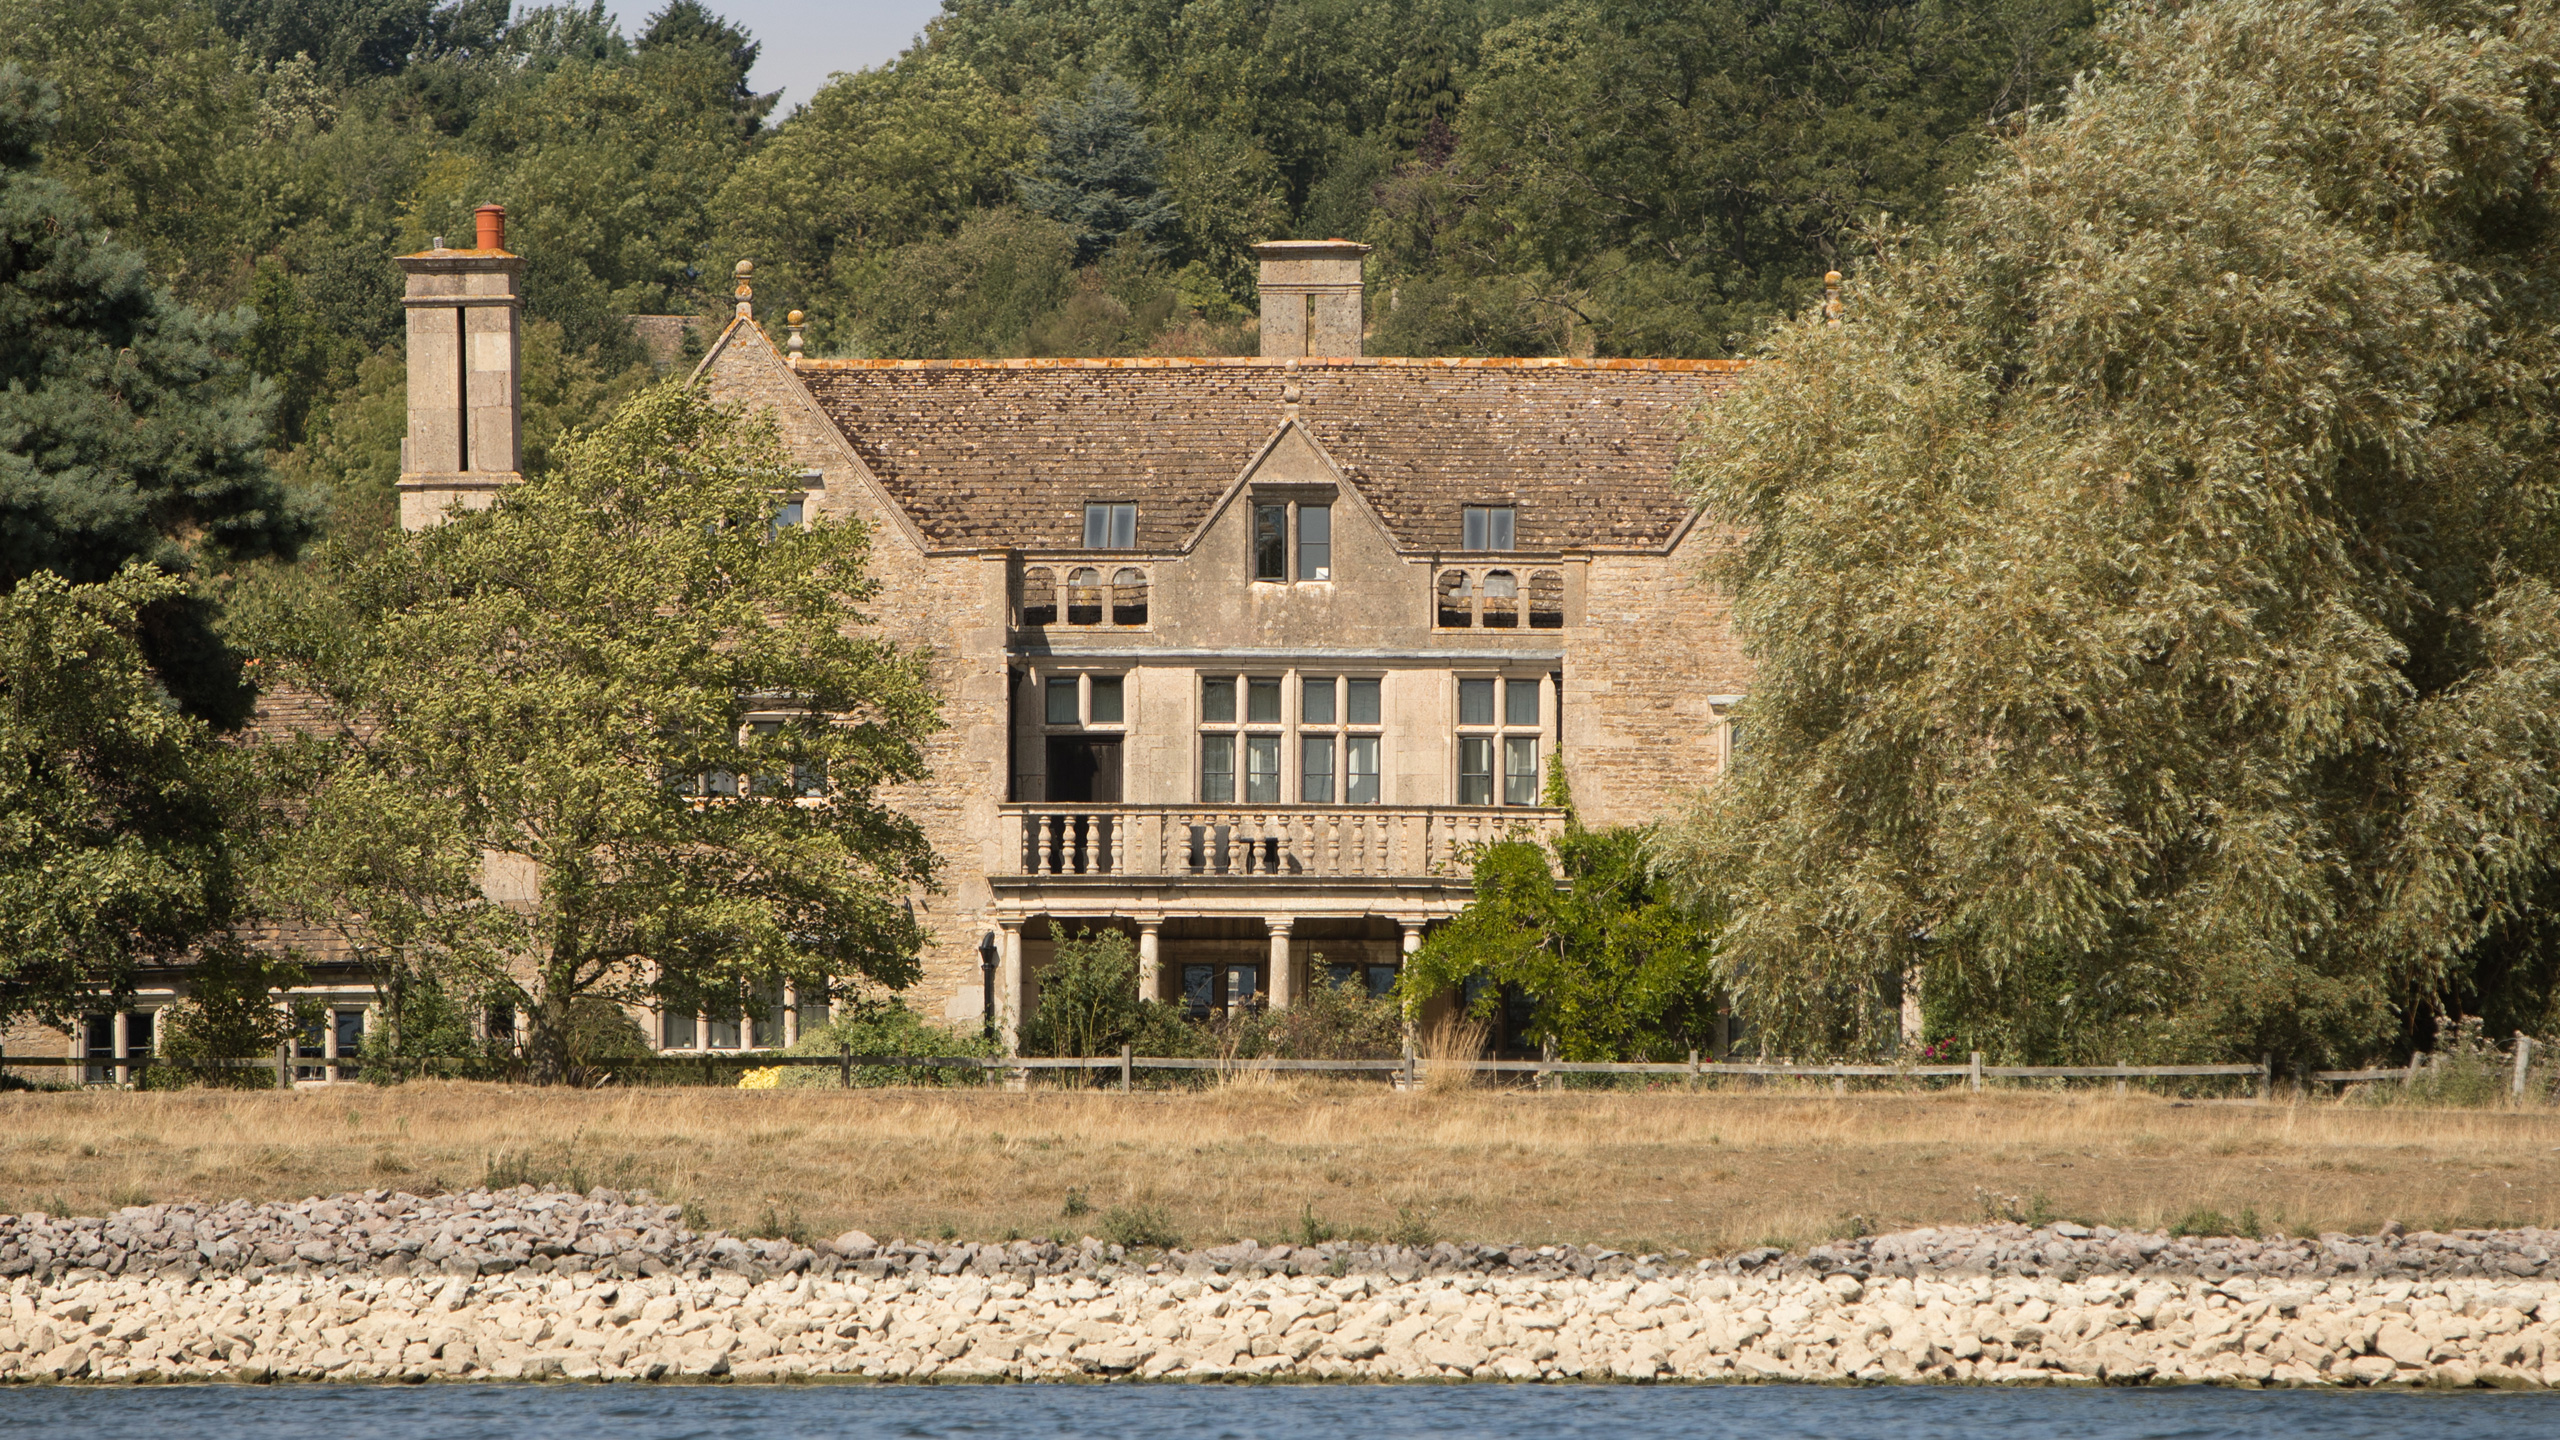 The Old Hall, Hambleton